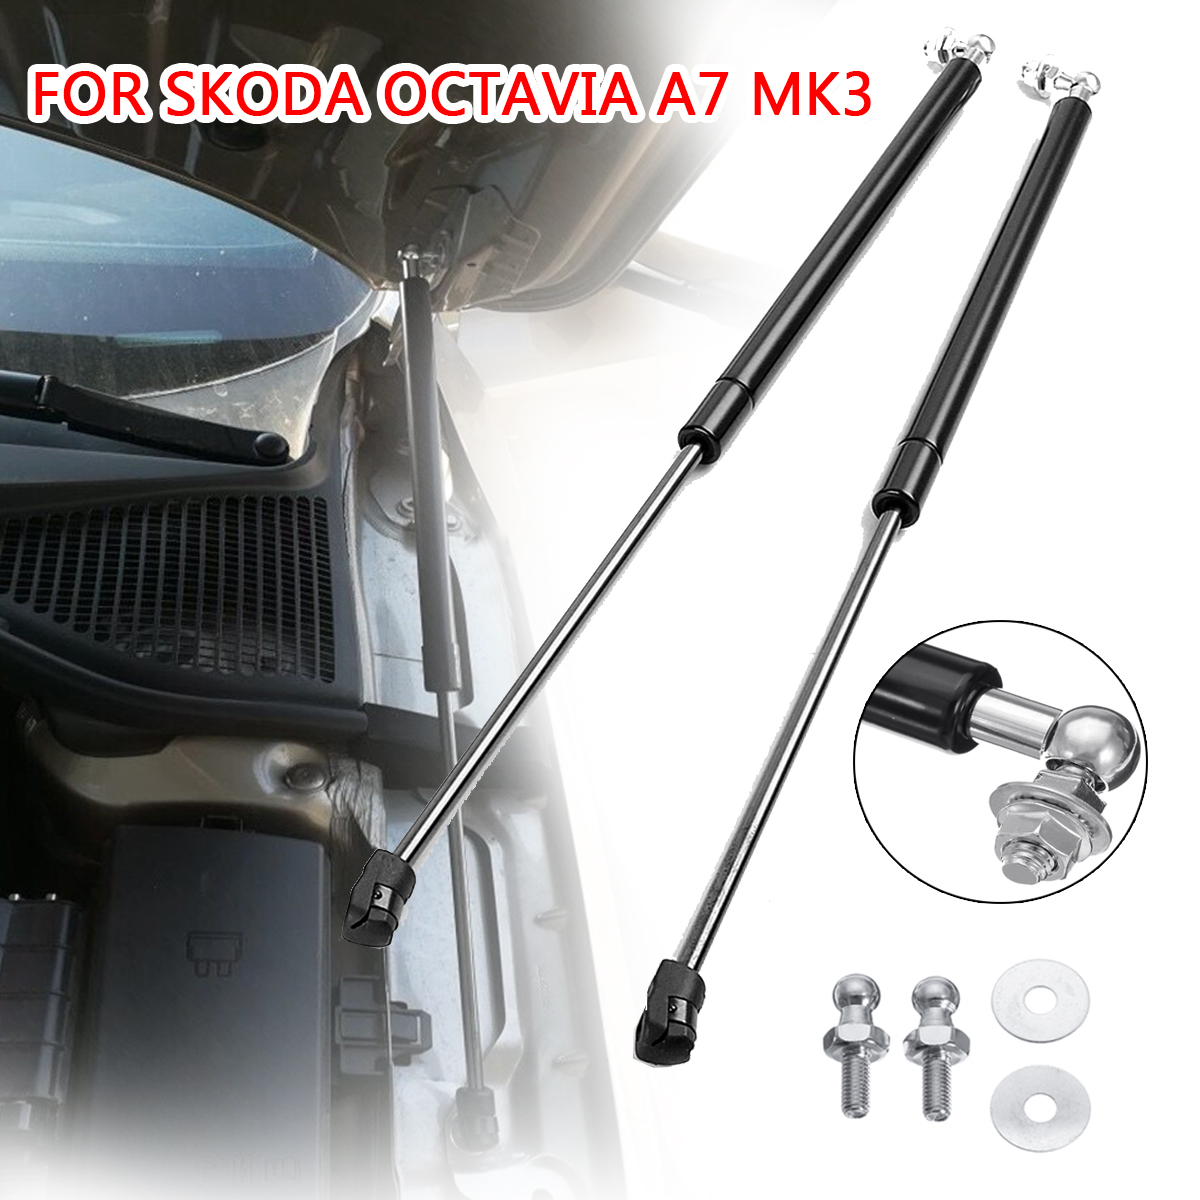 2Pcs Car Gas Shock Hood Shock Strut Damper Lift Support for Skoda Octavia A7 MK3 Stainless Steel Hydraulic Rod Car Accessories